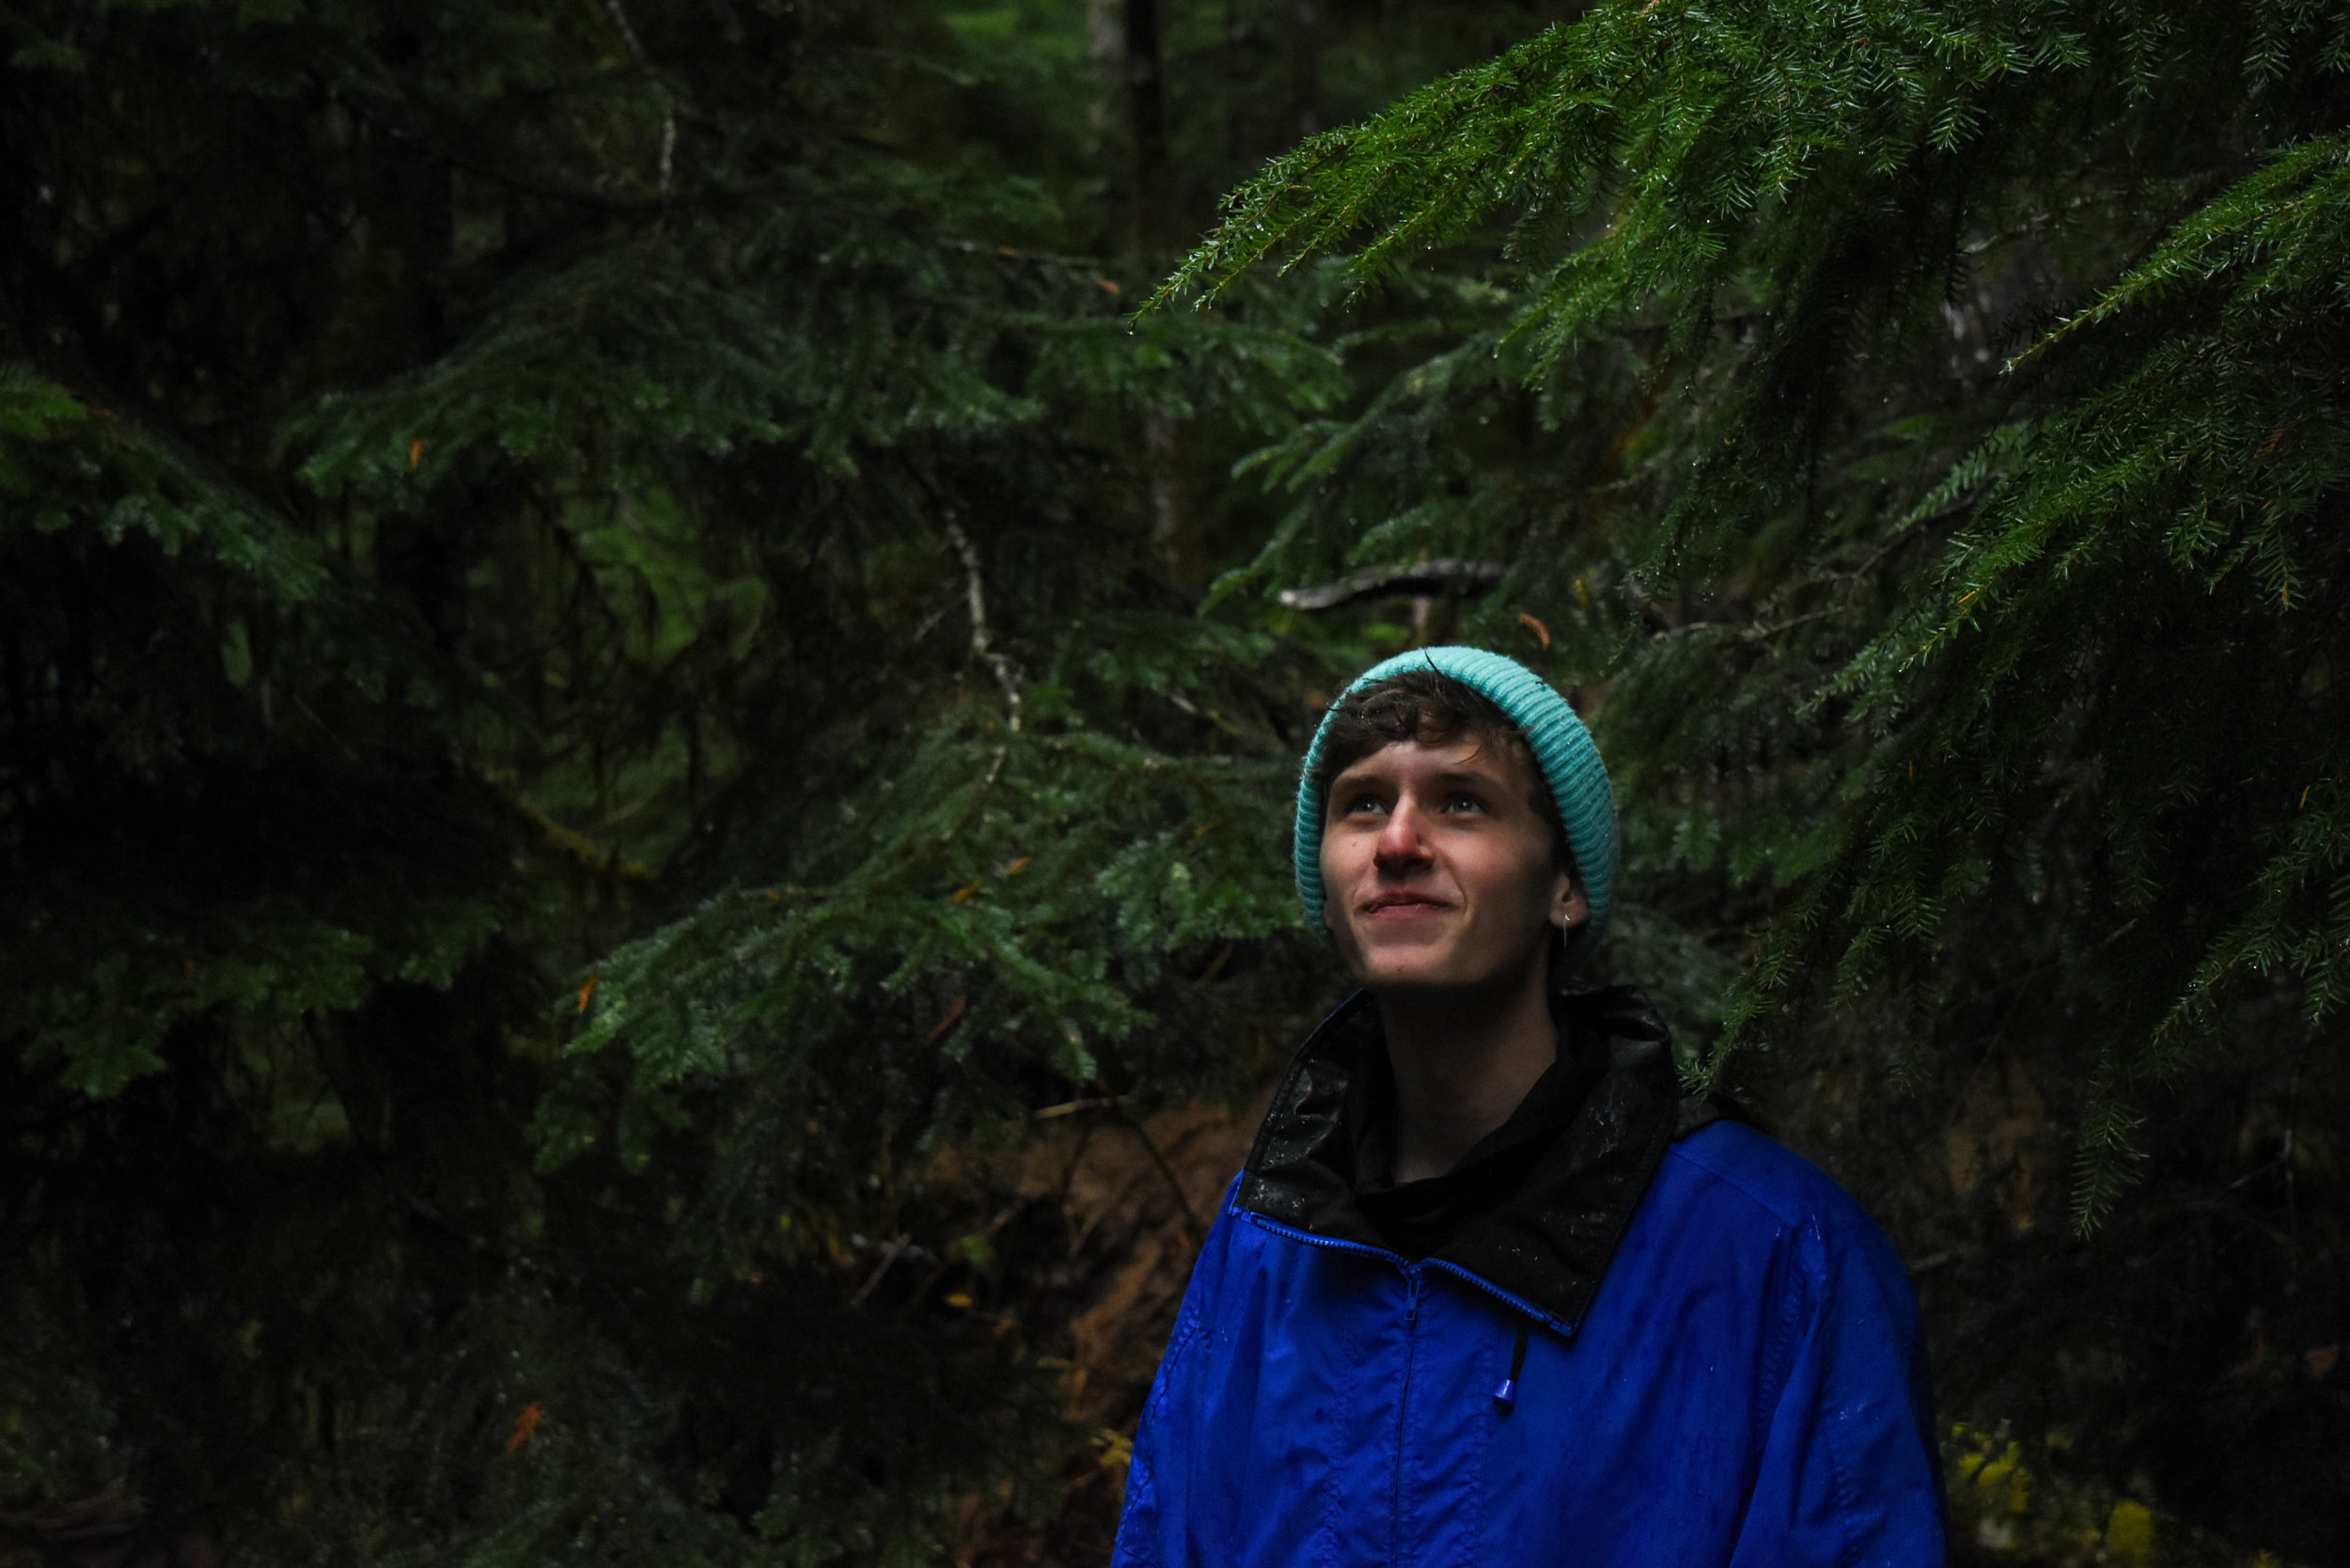 My friend gazed in awe at the lush emerald foliage in a forest at the base of Mt. Rainier. Less than an hour earlier, we had been covered in snow while hiking near the mountain's peak.